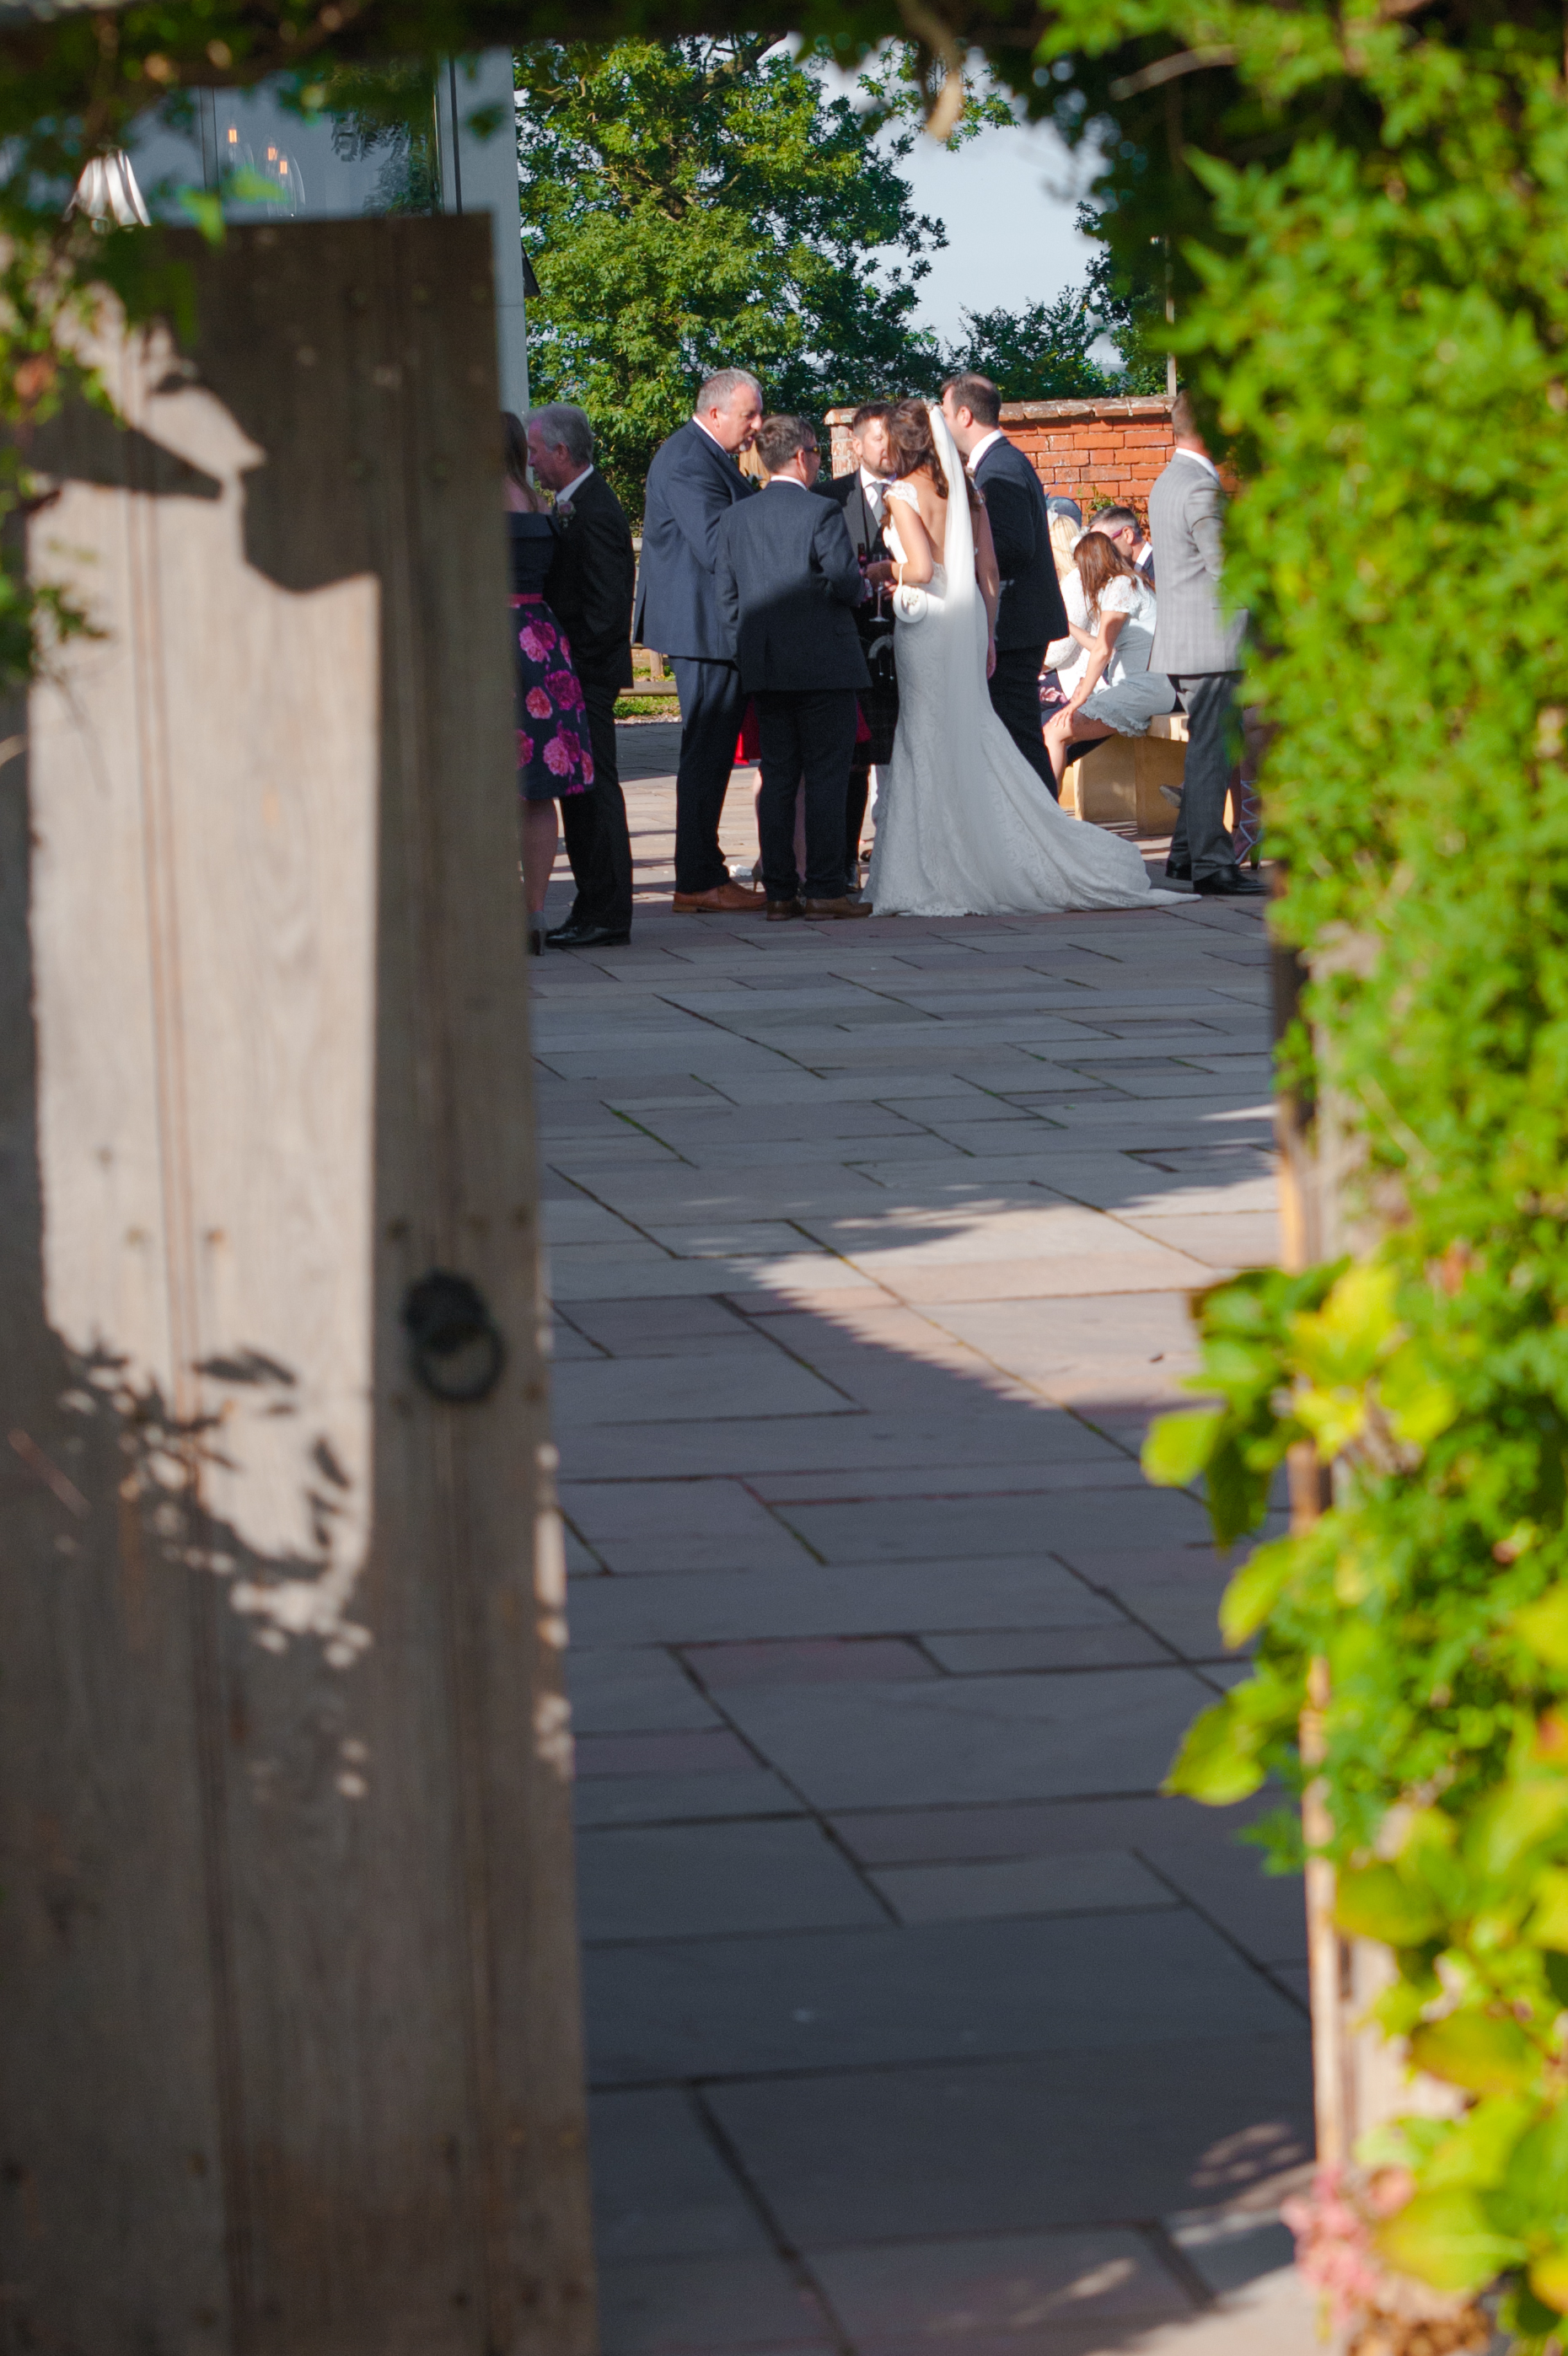 Wedding party viewed through the gate of the walled garden